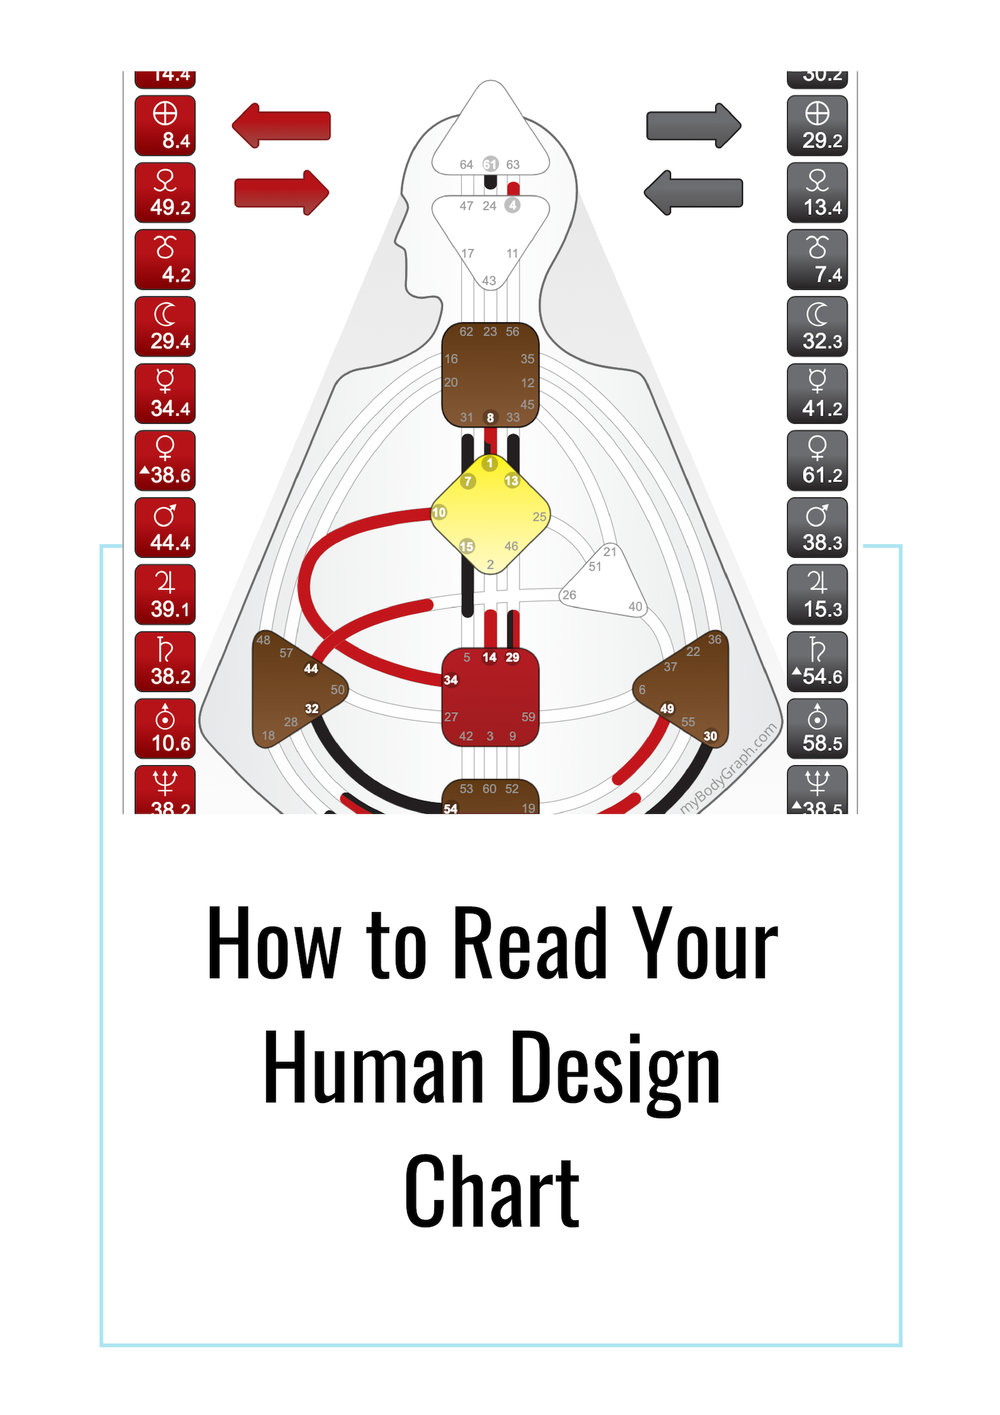 how-to-read-your-human-design-chart.jpg